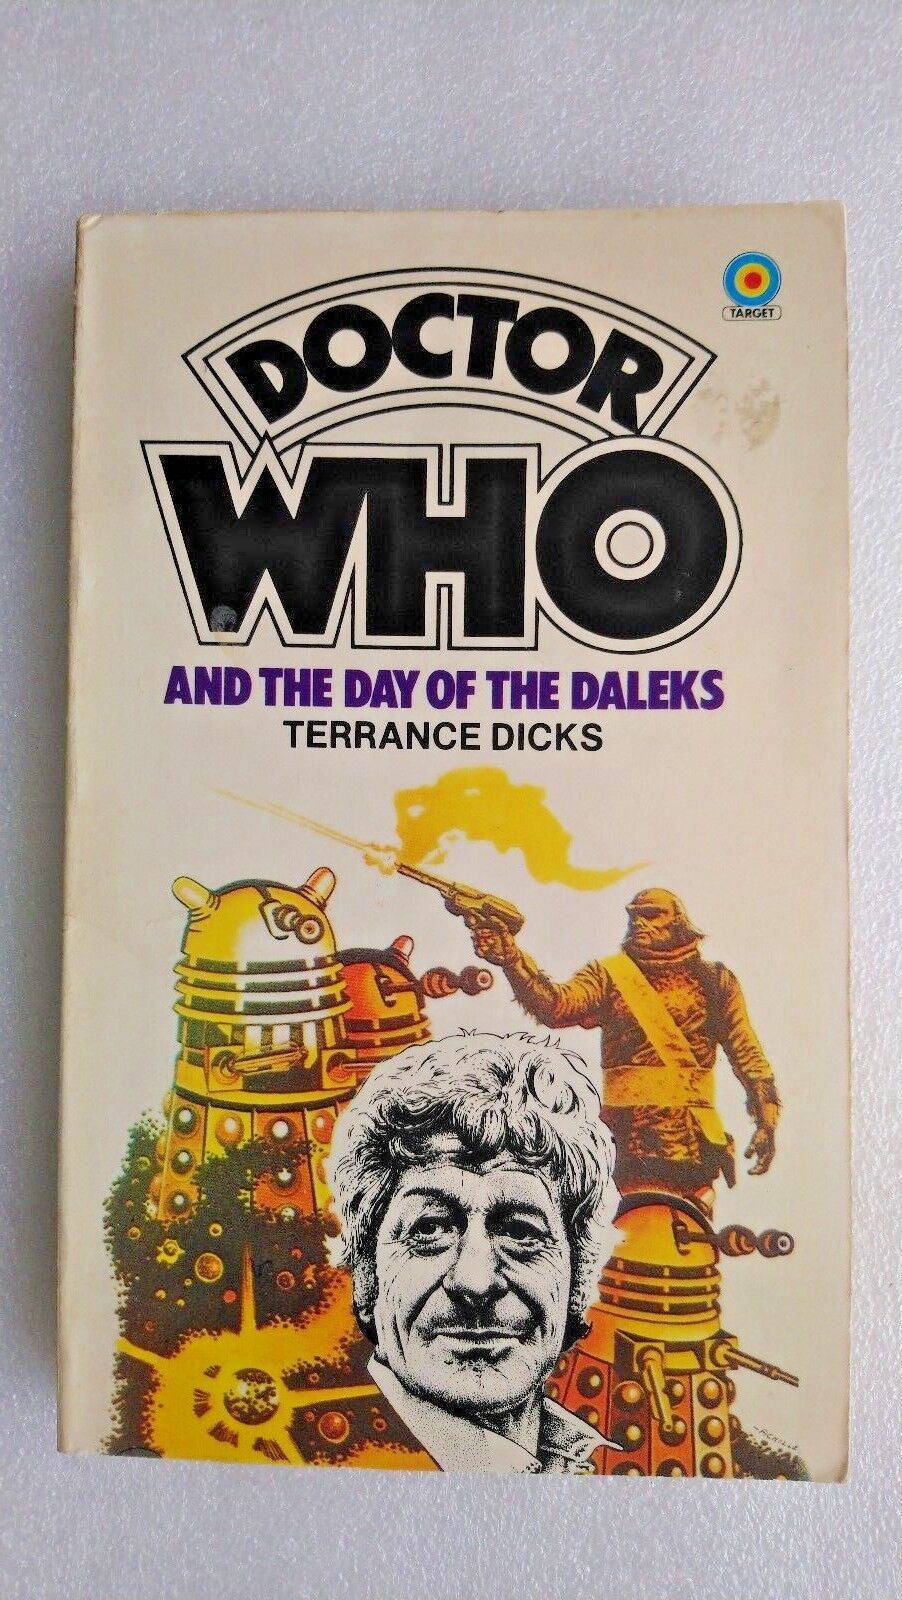 Doctor Who and the Day of the Daleks by Terrance Dicks (Paperback, 1980)